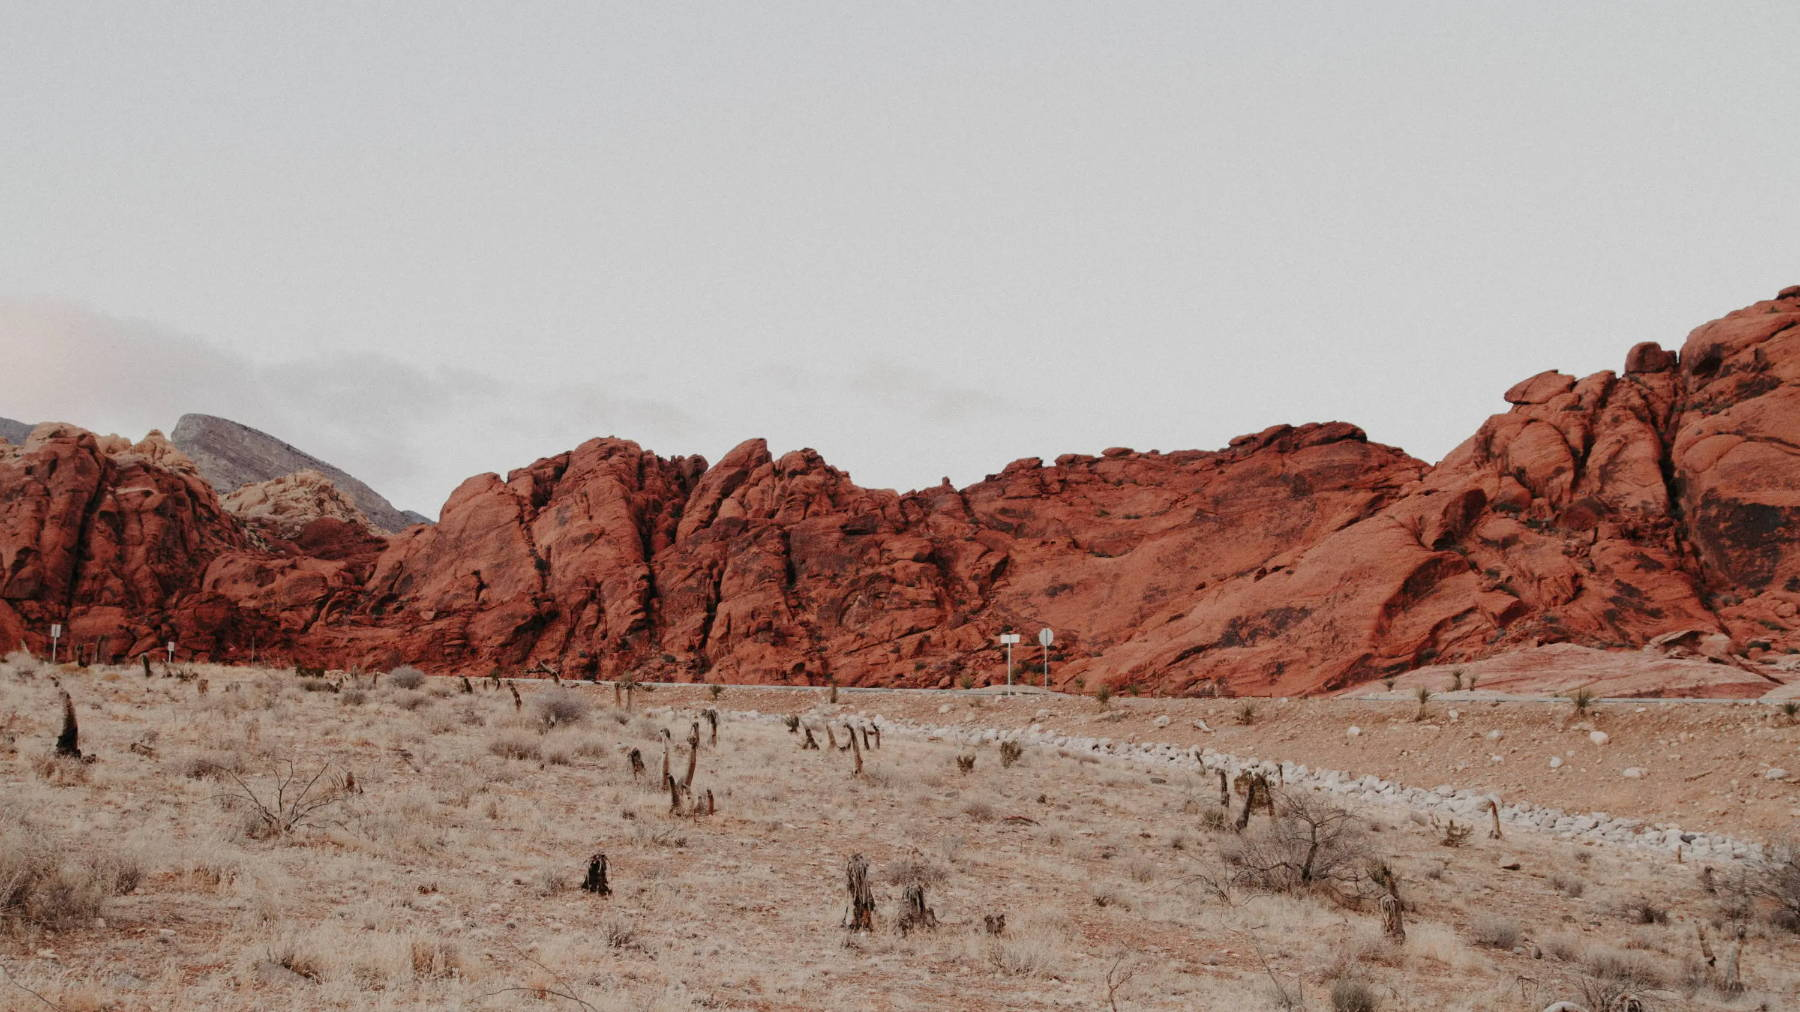 Desert nature with red rock and a hazy overcast sky